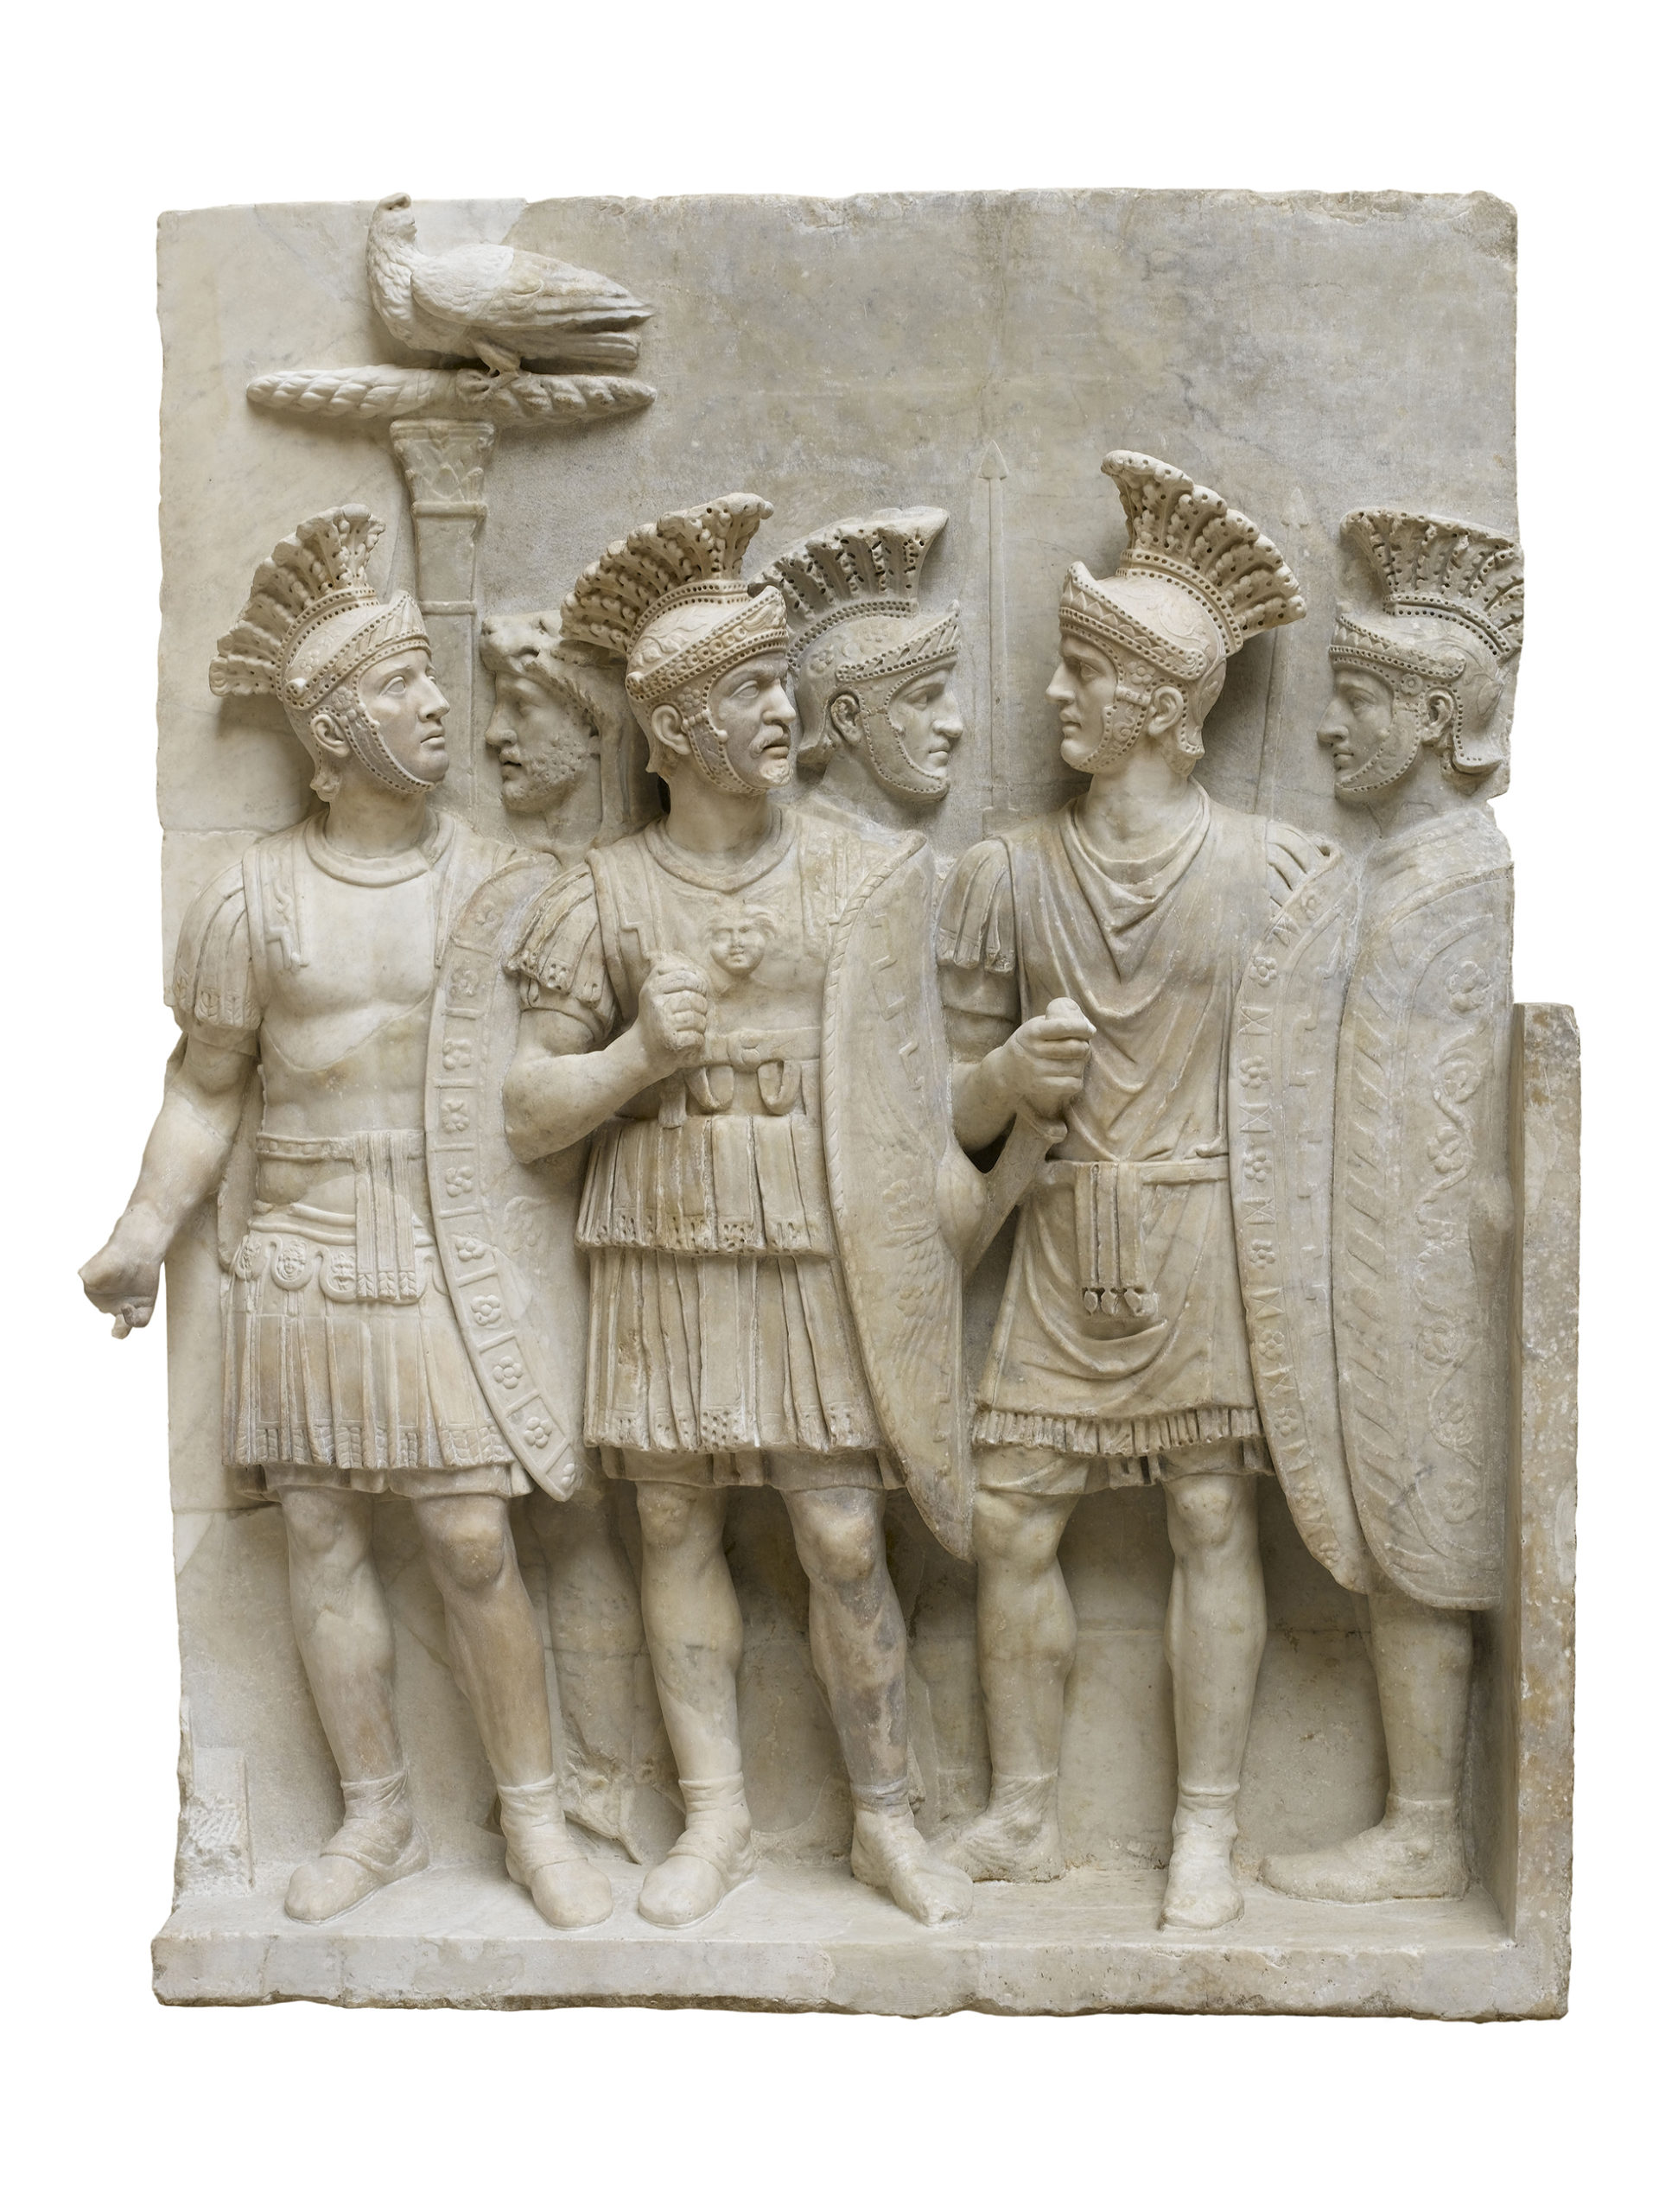 A cream coloured relief showing a group of 6 members of the praetorian guard in armour holding shields.